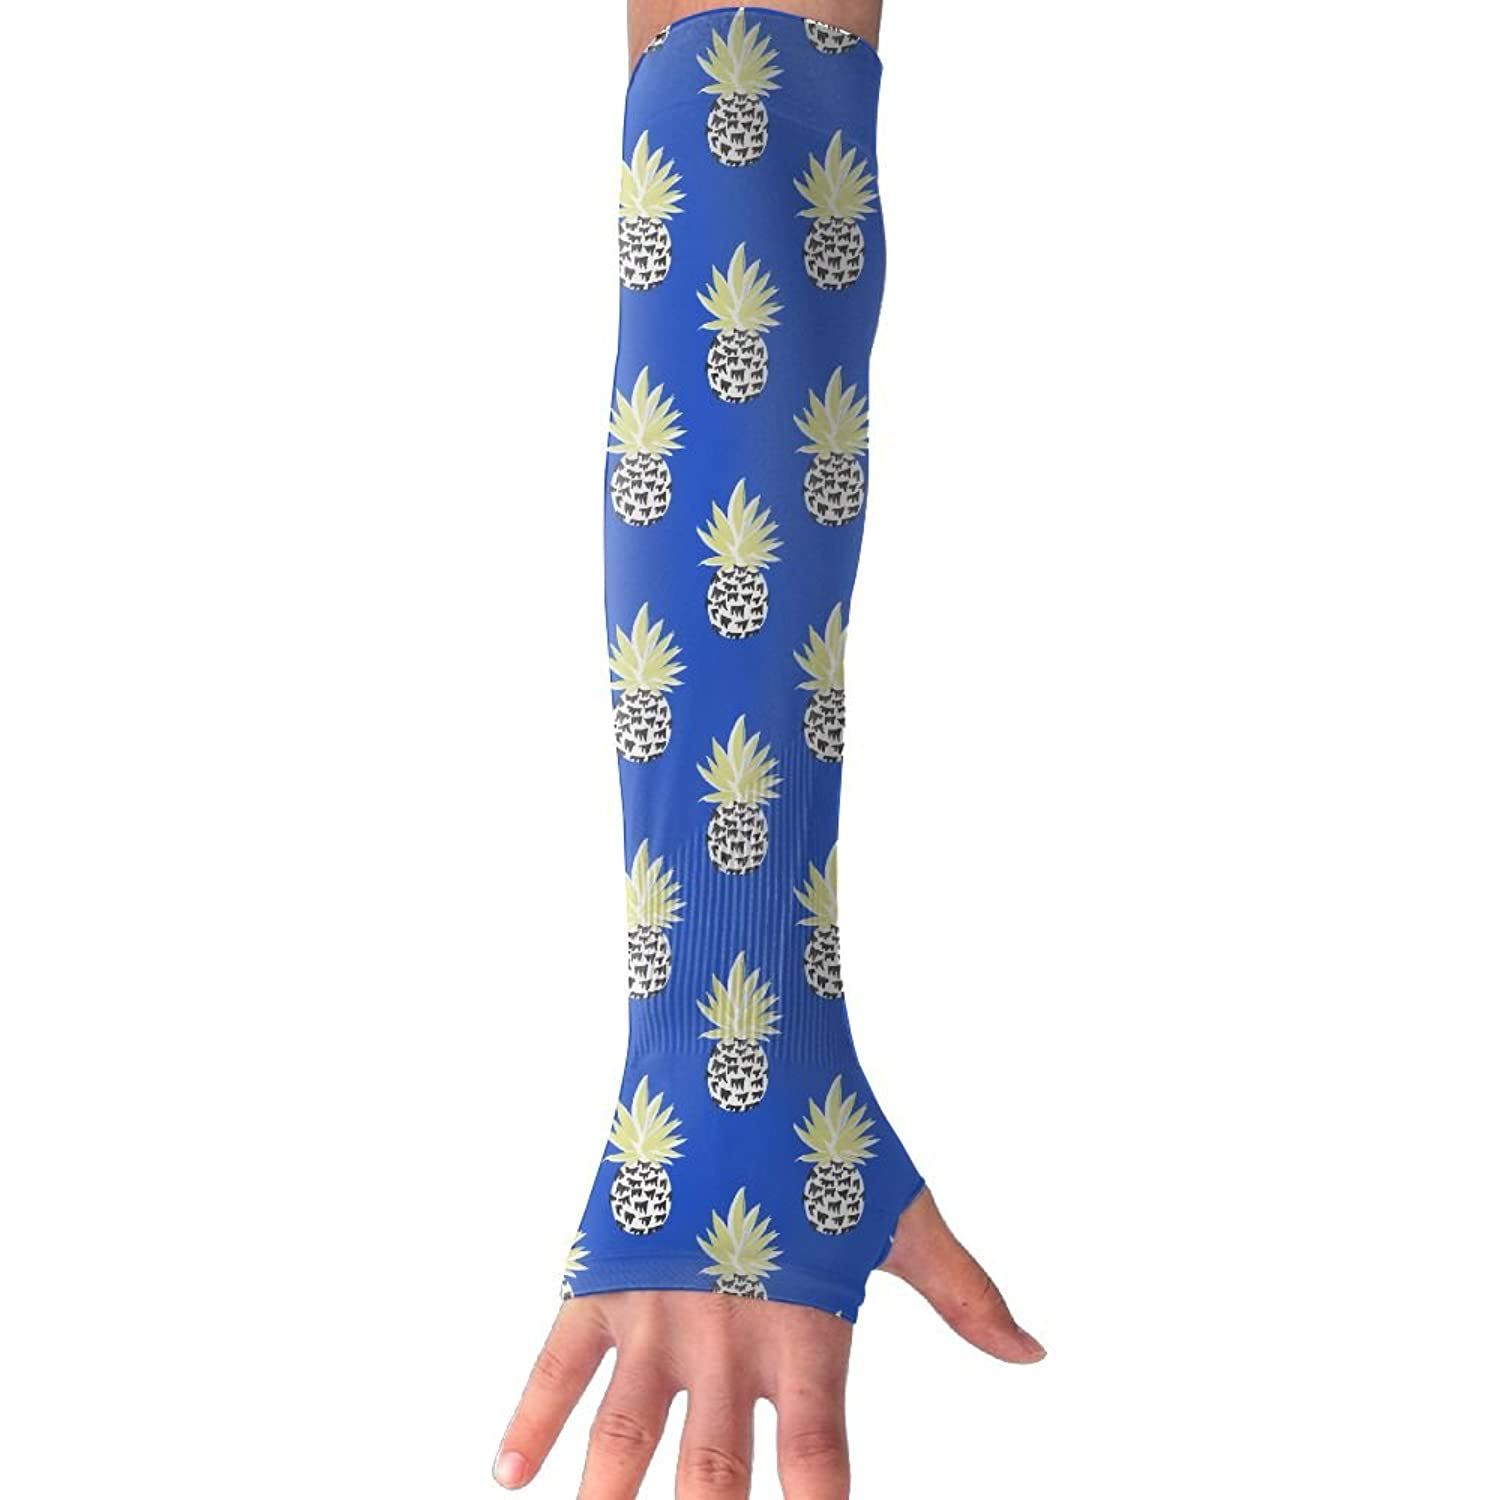 Unisex Drawing Pineapple In Blue Sense Ice Outdoor Sports Arm Warmer Long Sleeves Glove